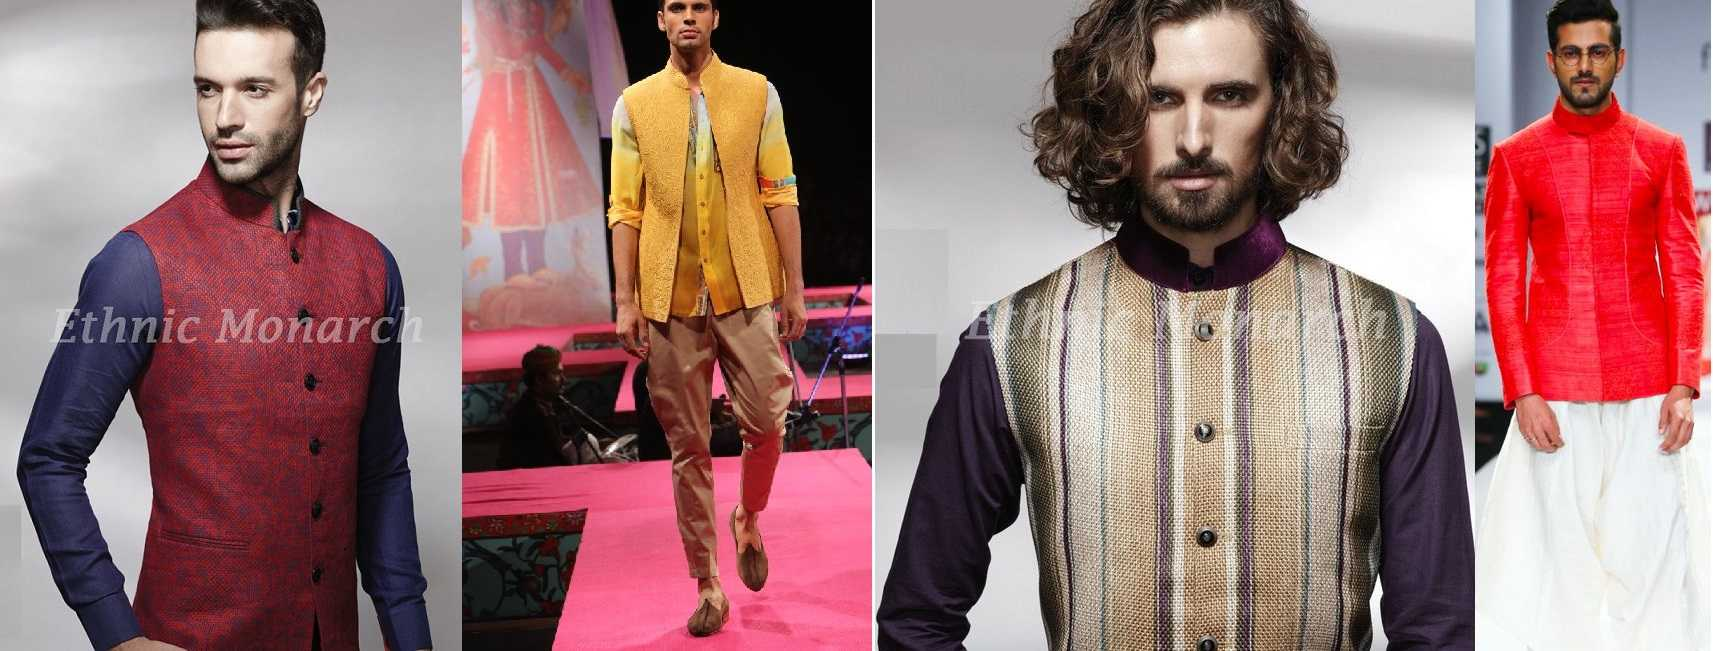 jackets - MENarchy- SS'15 Trends for Men